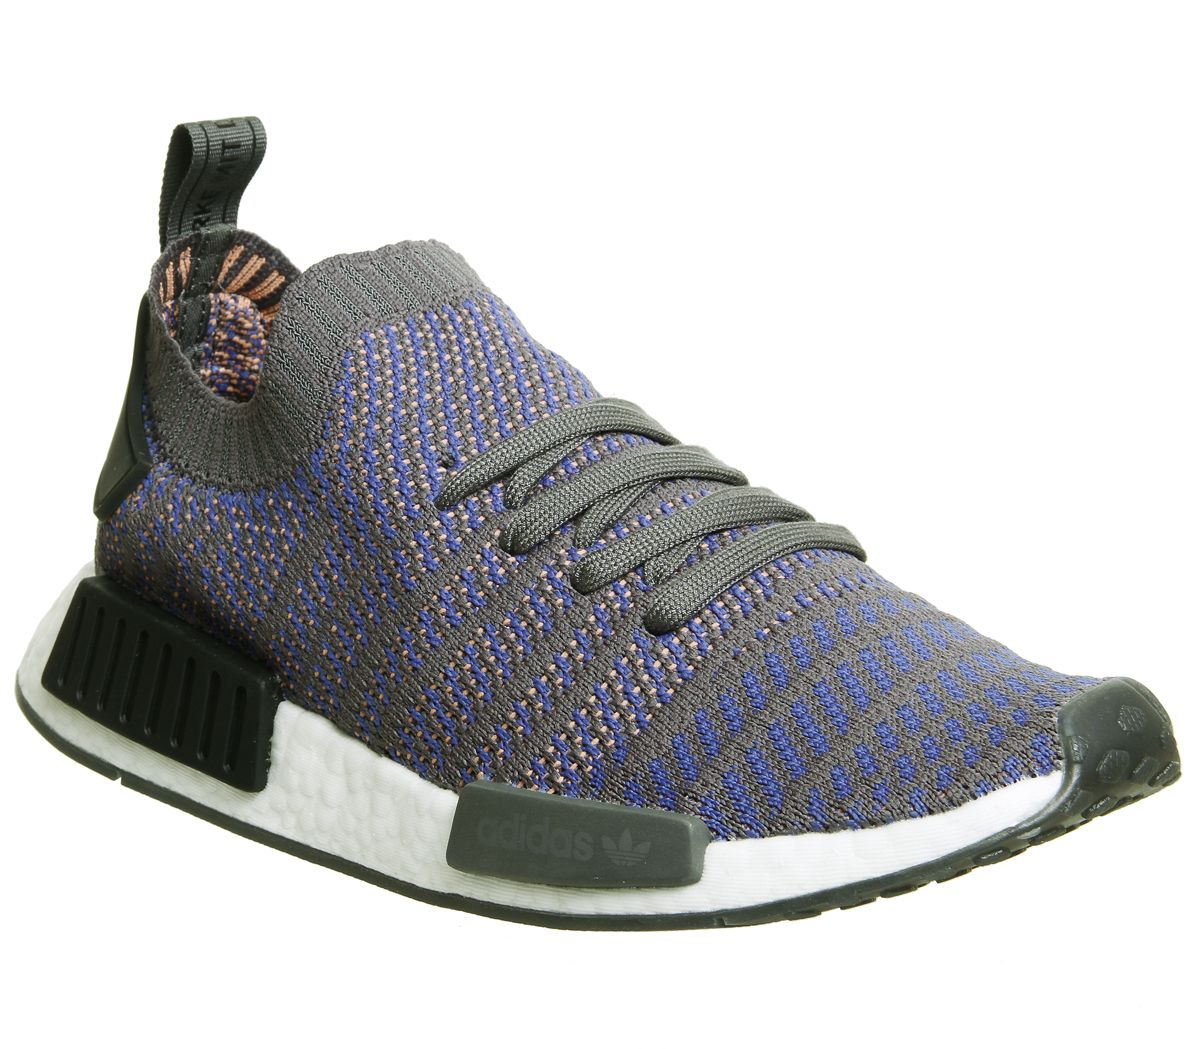 001fcb886 Sentinel Adidas Nmd R1 Prime Knit Trainers Hi Res Blue Black White Trainers  Shoes